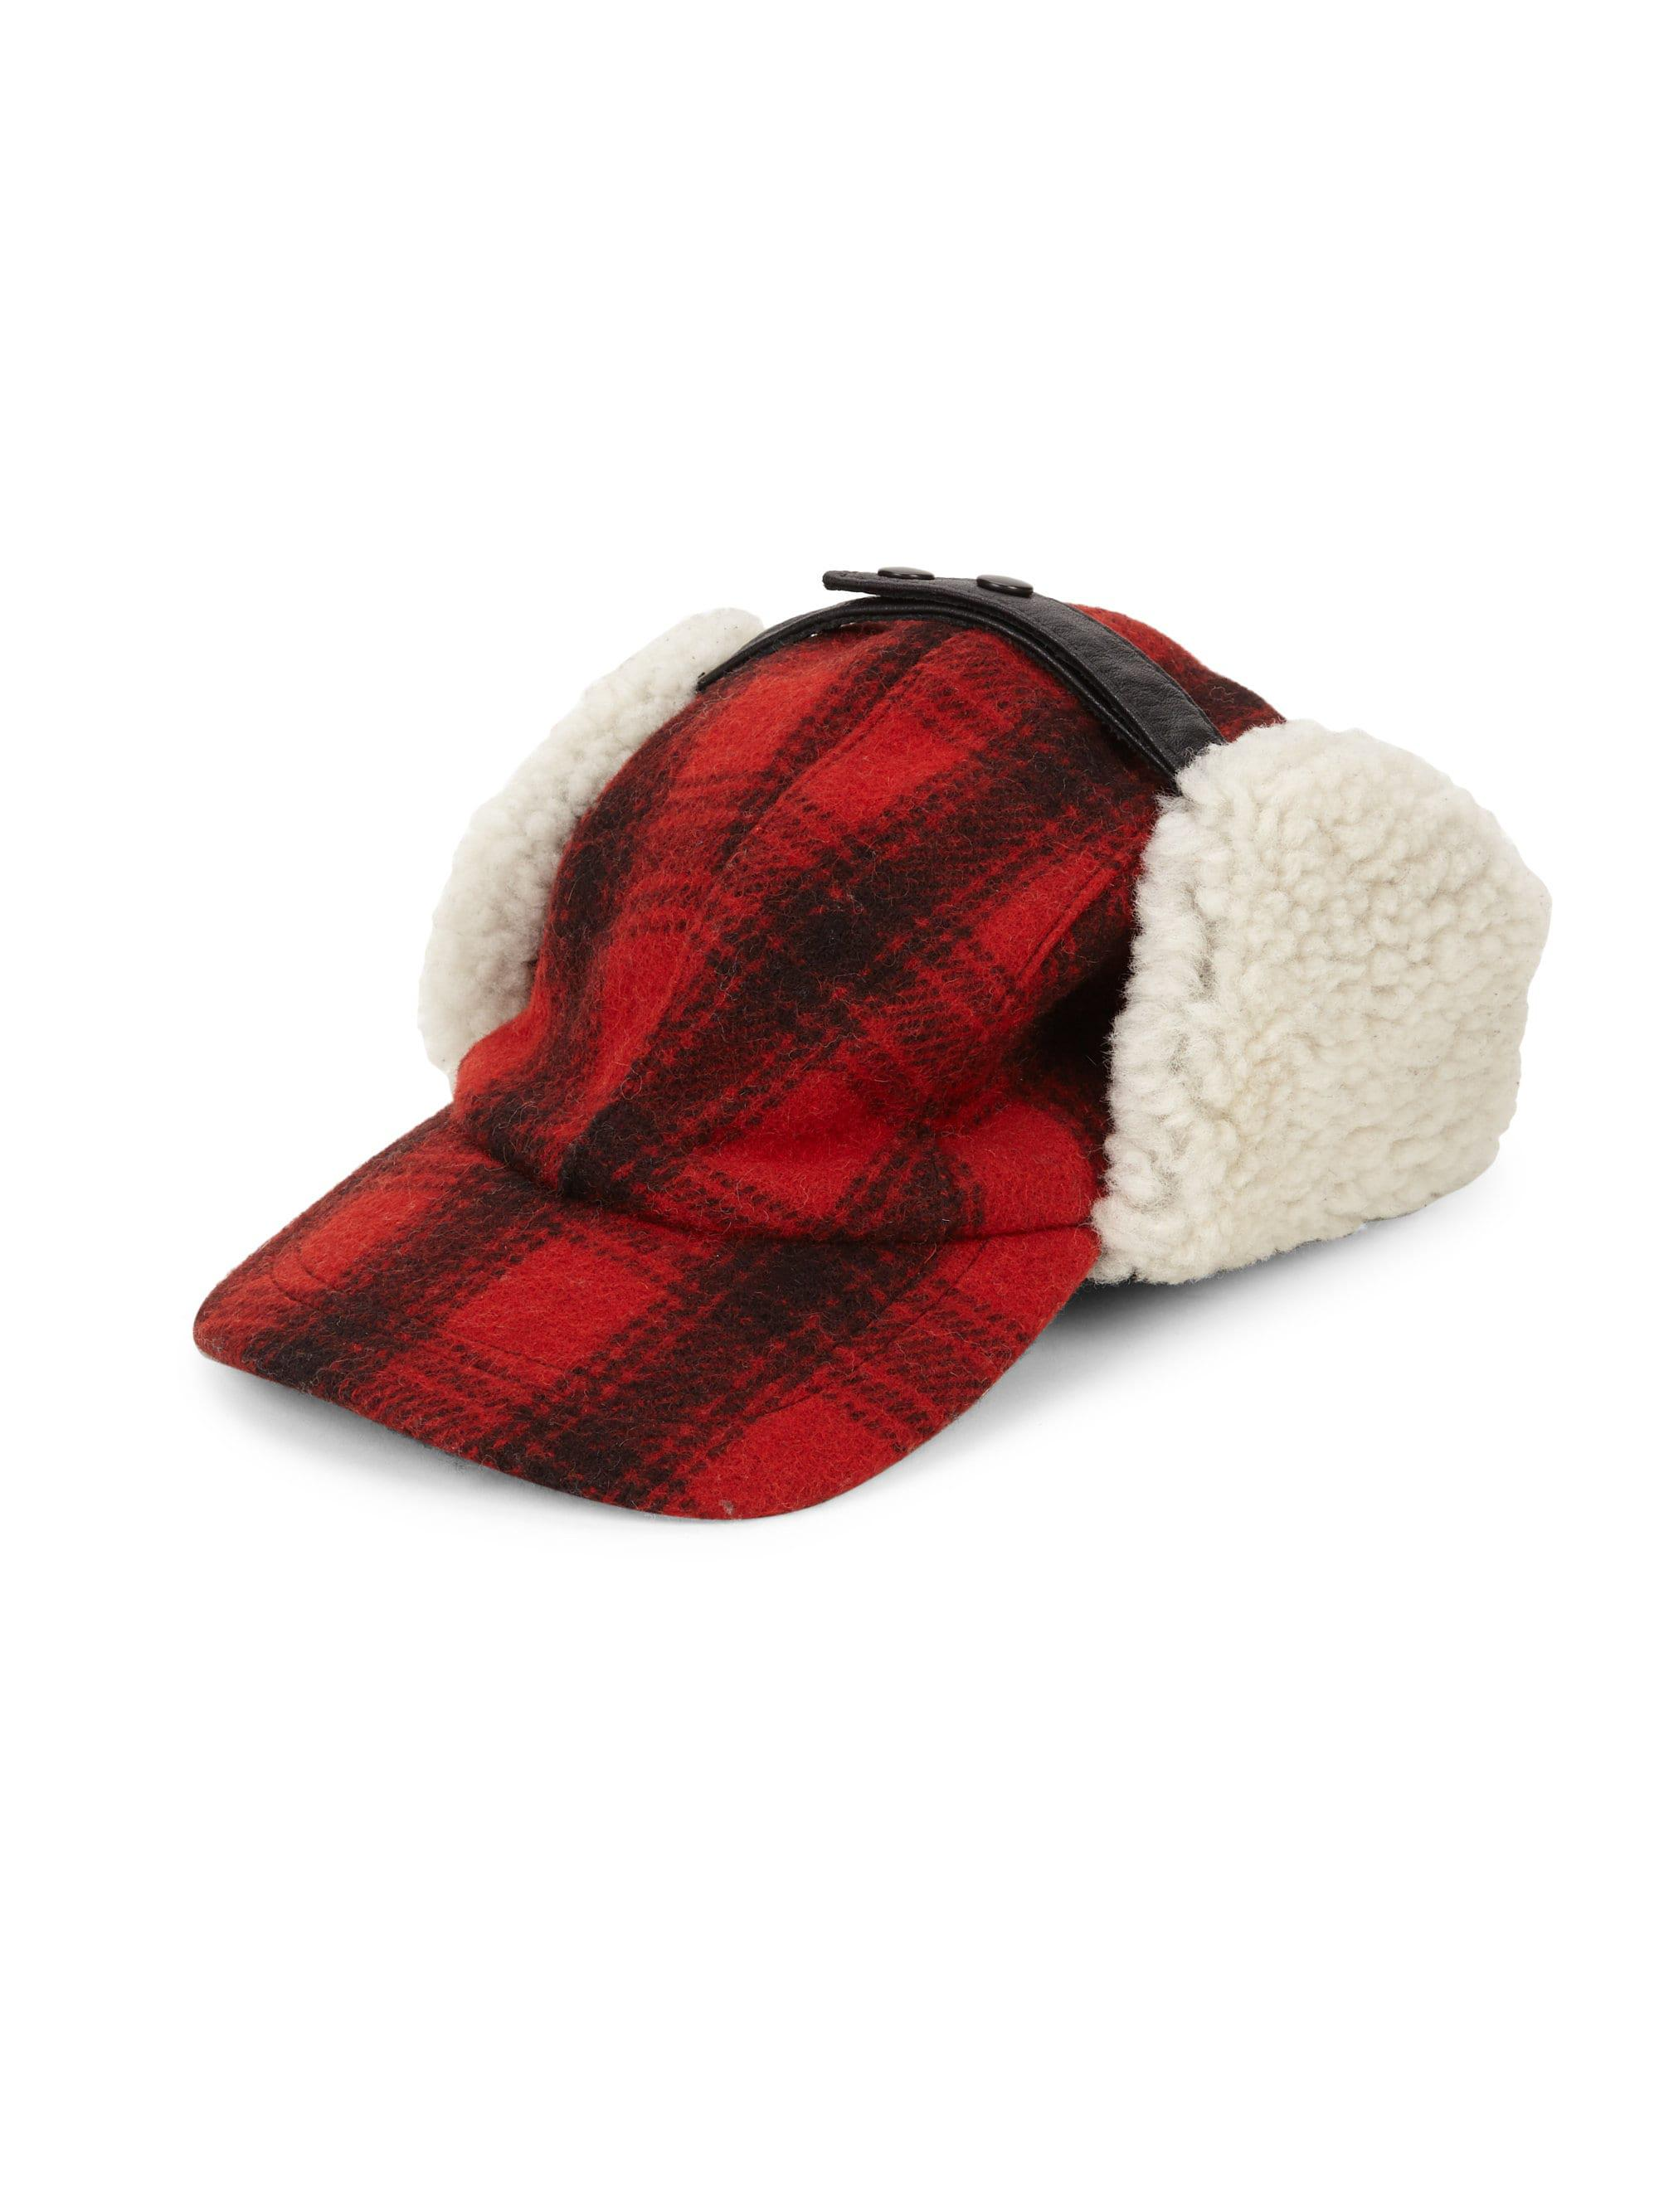 f65652232f4b48 Crown Cap Men's Plaid & Shearling Fur Trapper Hat - Red - Size ...